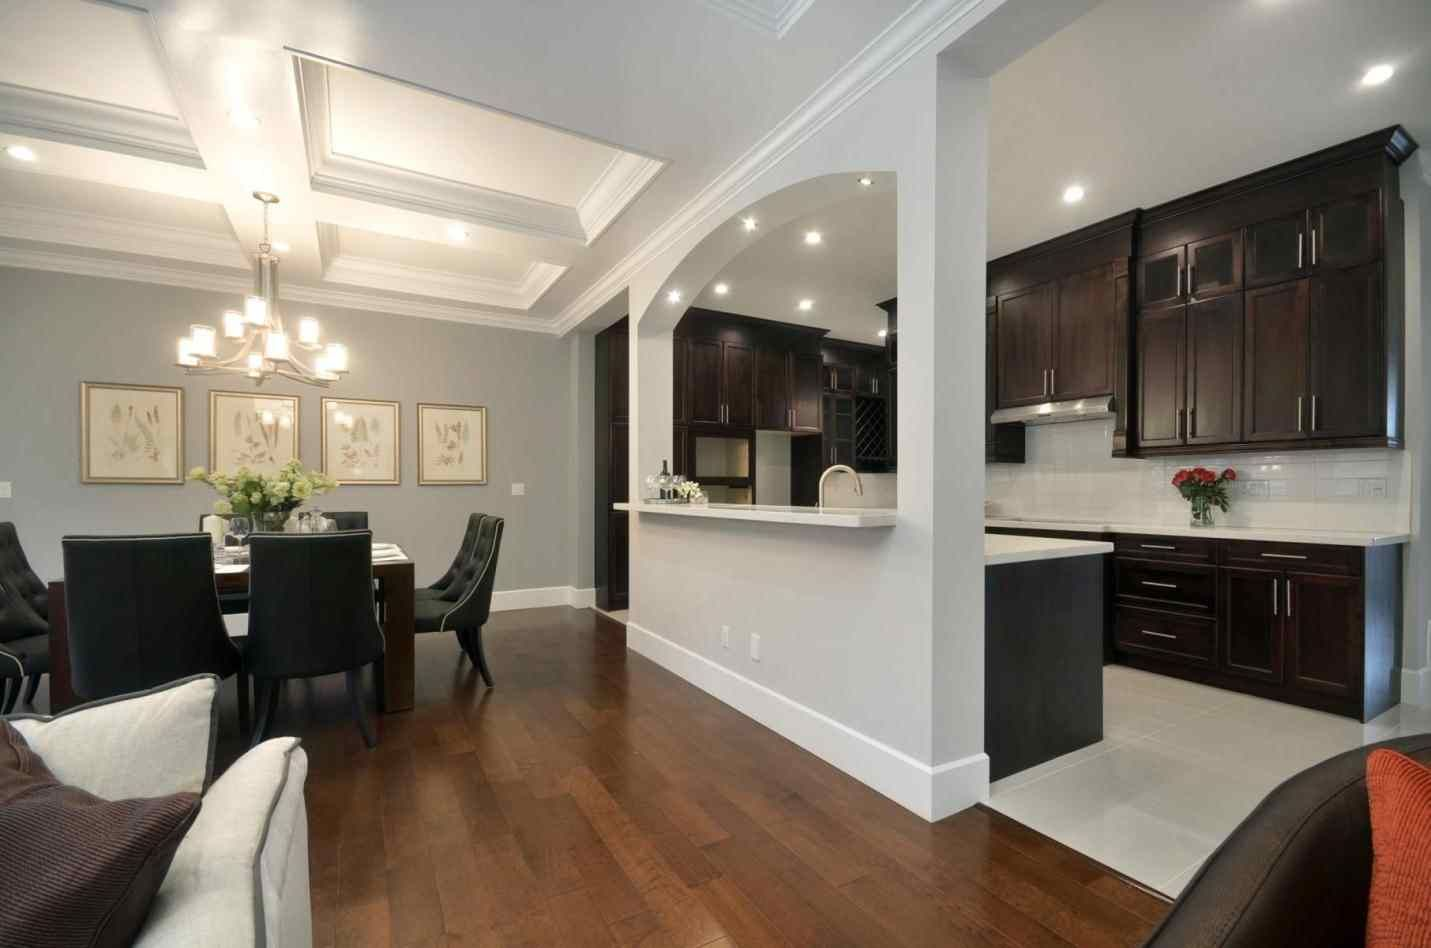 Angled Semi Open Galley Kitchens Small Open Galley Kitchen Deductour Com Open Kitchen And Living Room Home Remodeling Galley Style Kitchen